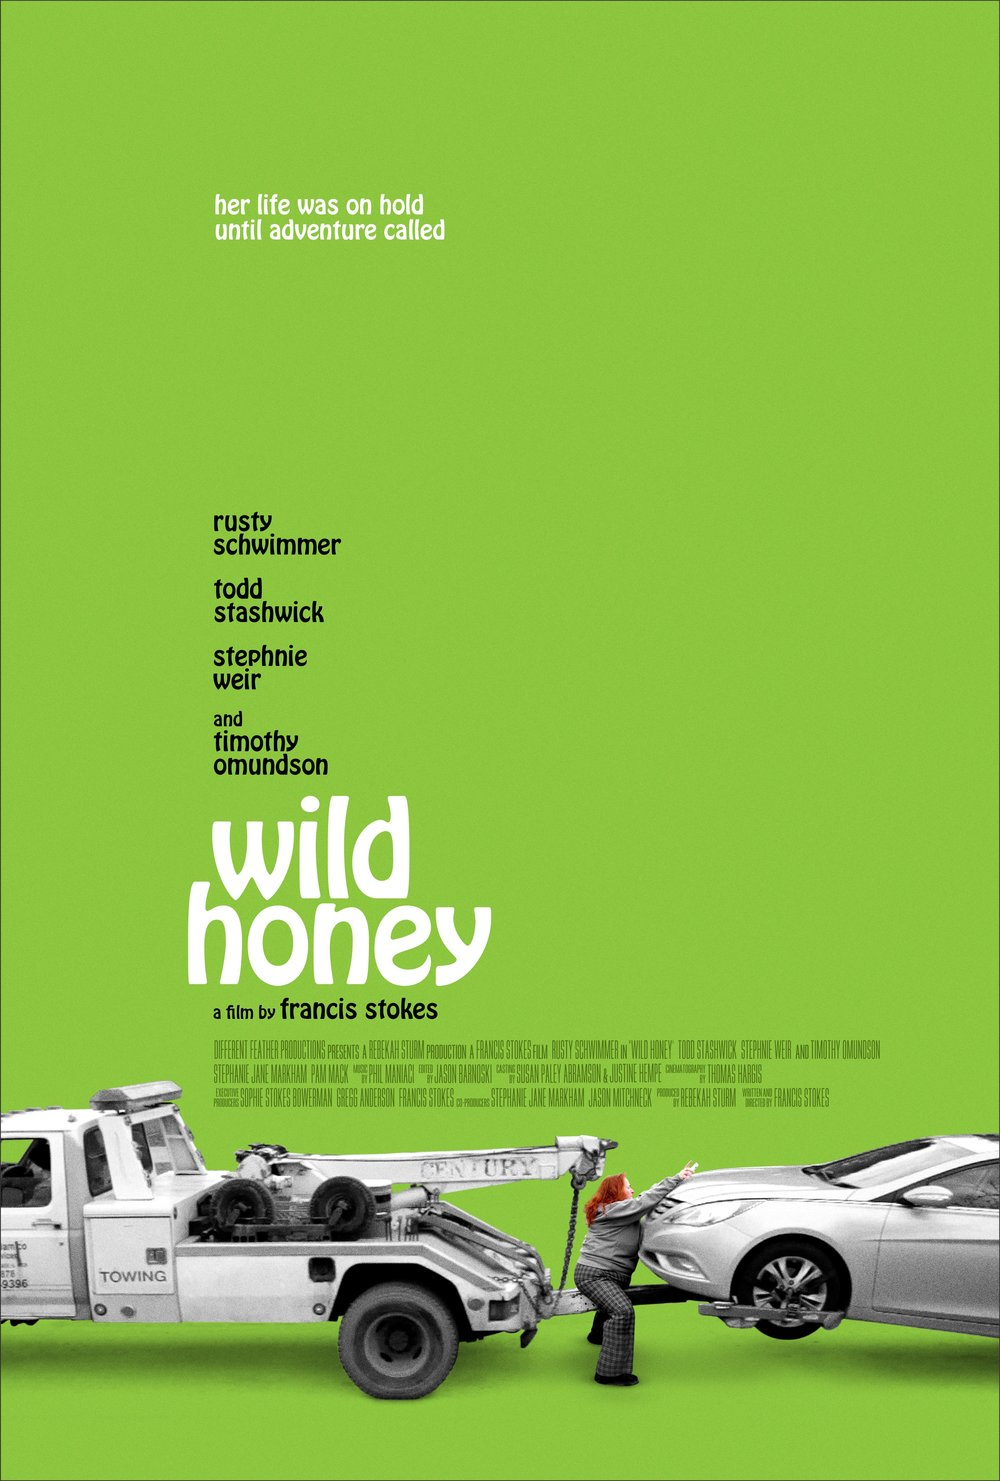 WildHoney social Media Poster.jpg